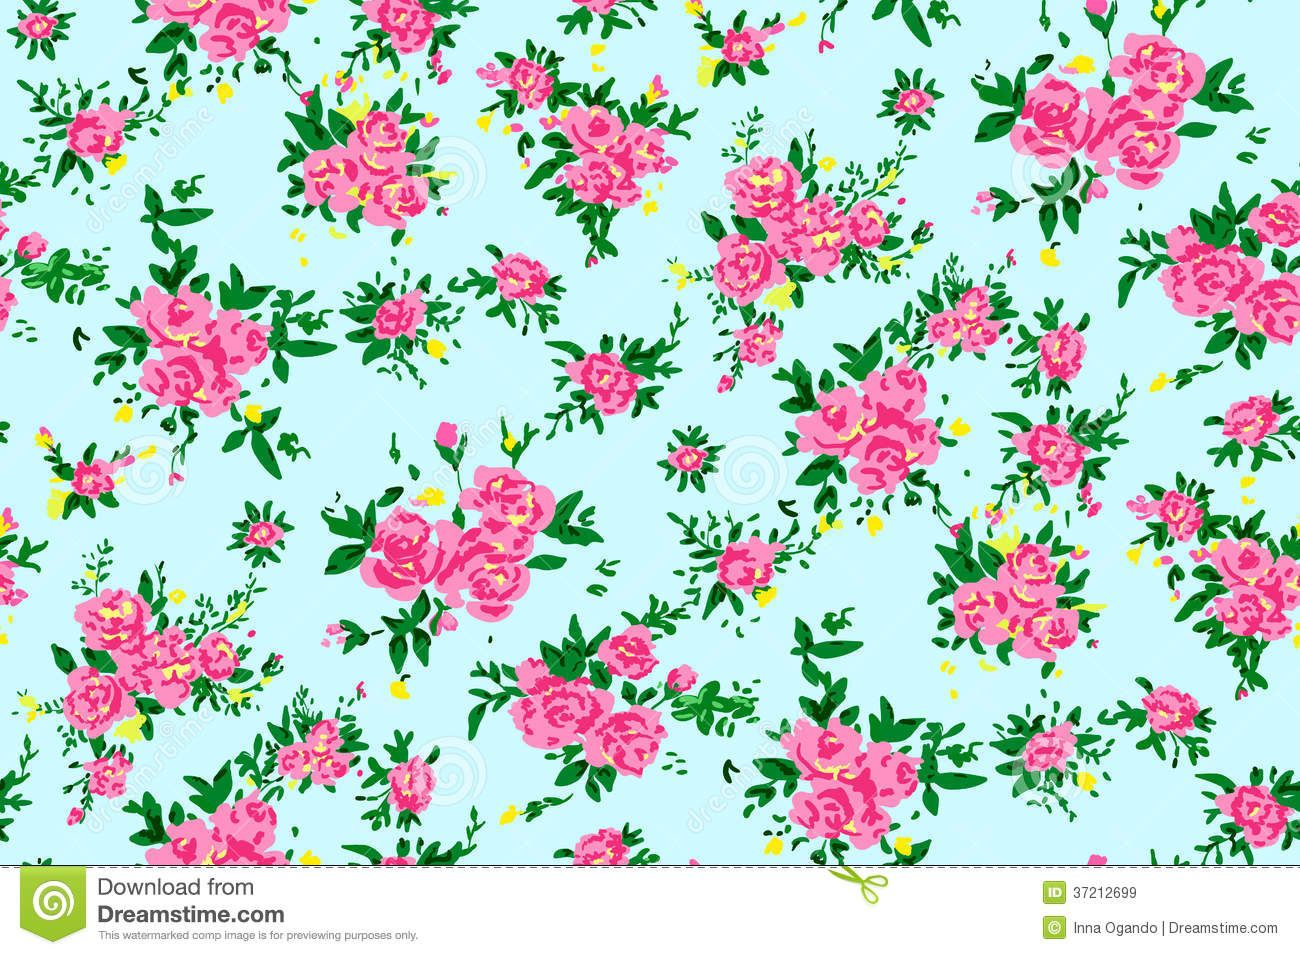 mint rose wallpaper google search so call me maybe